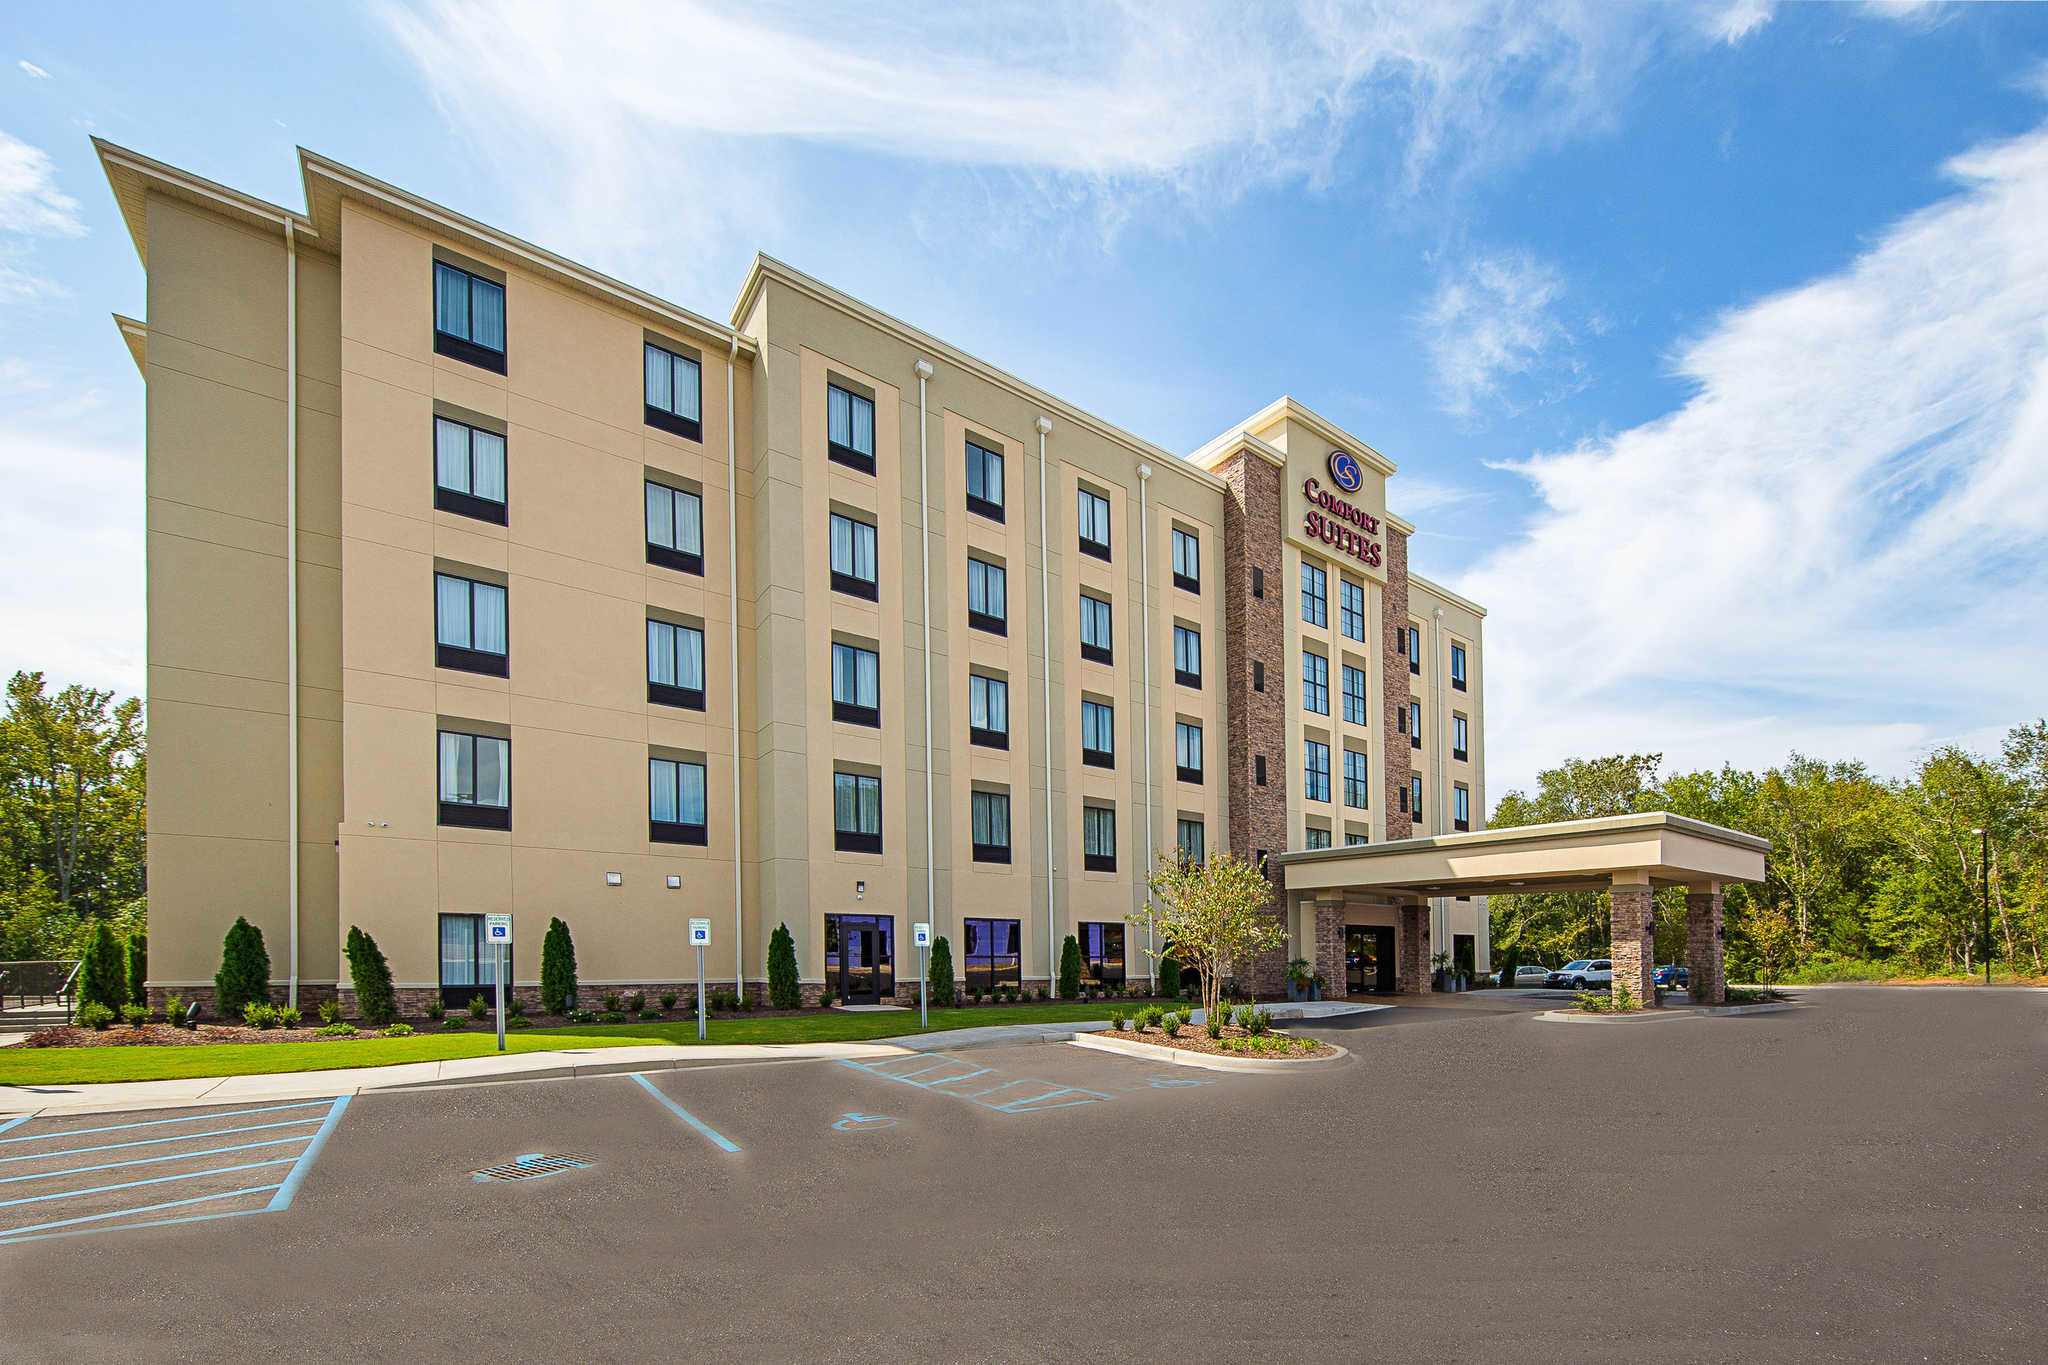 Comfort Suites Greenville South image 0